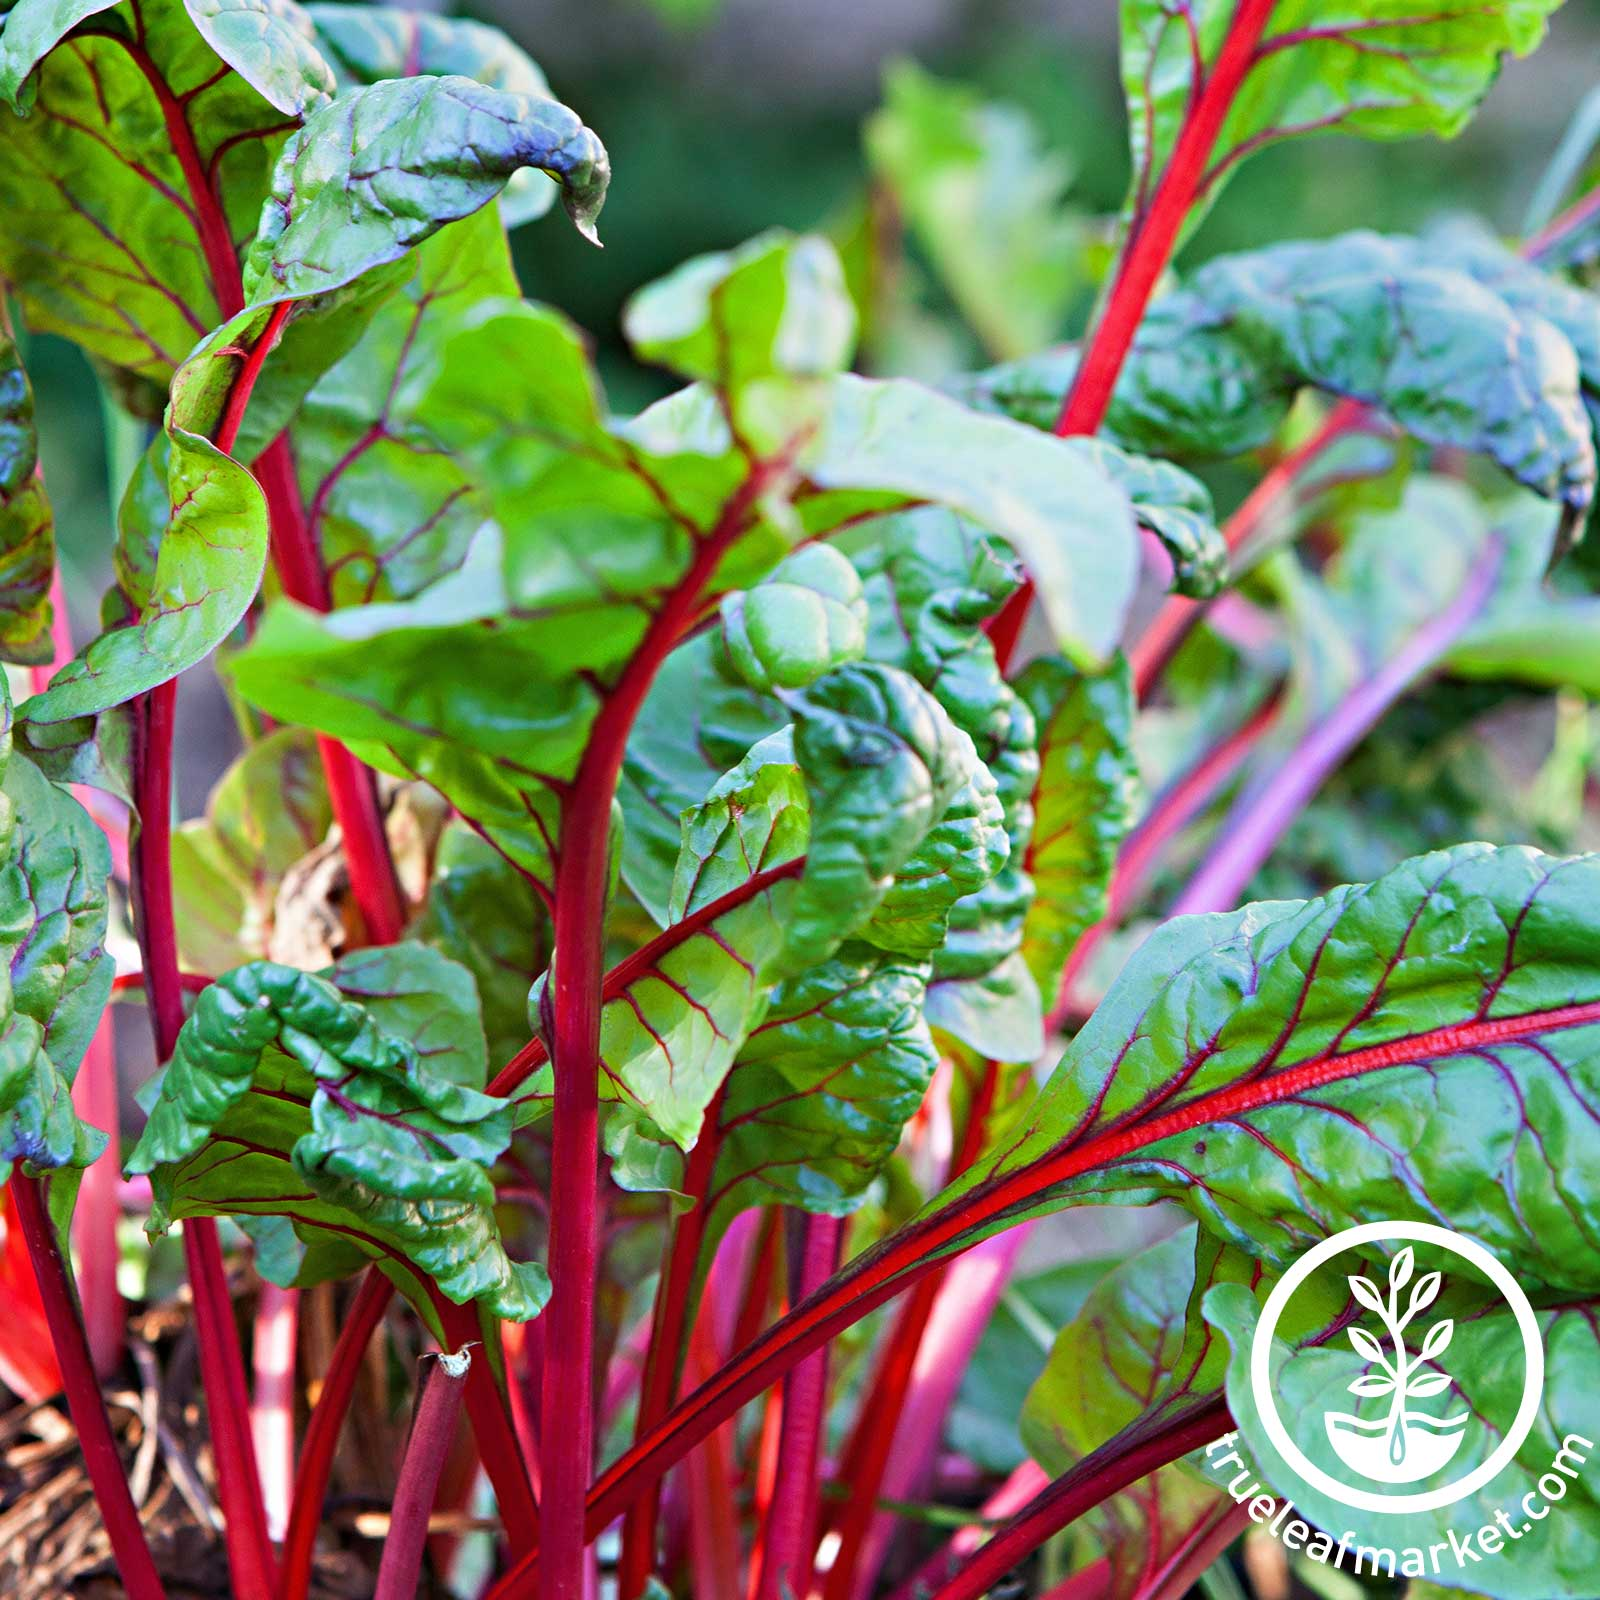 Swiss Chard - Rhubarb Vegetable seeds, swiss chard seeds, Rhubarb